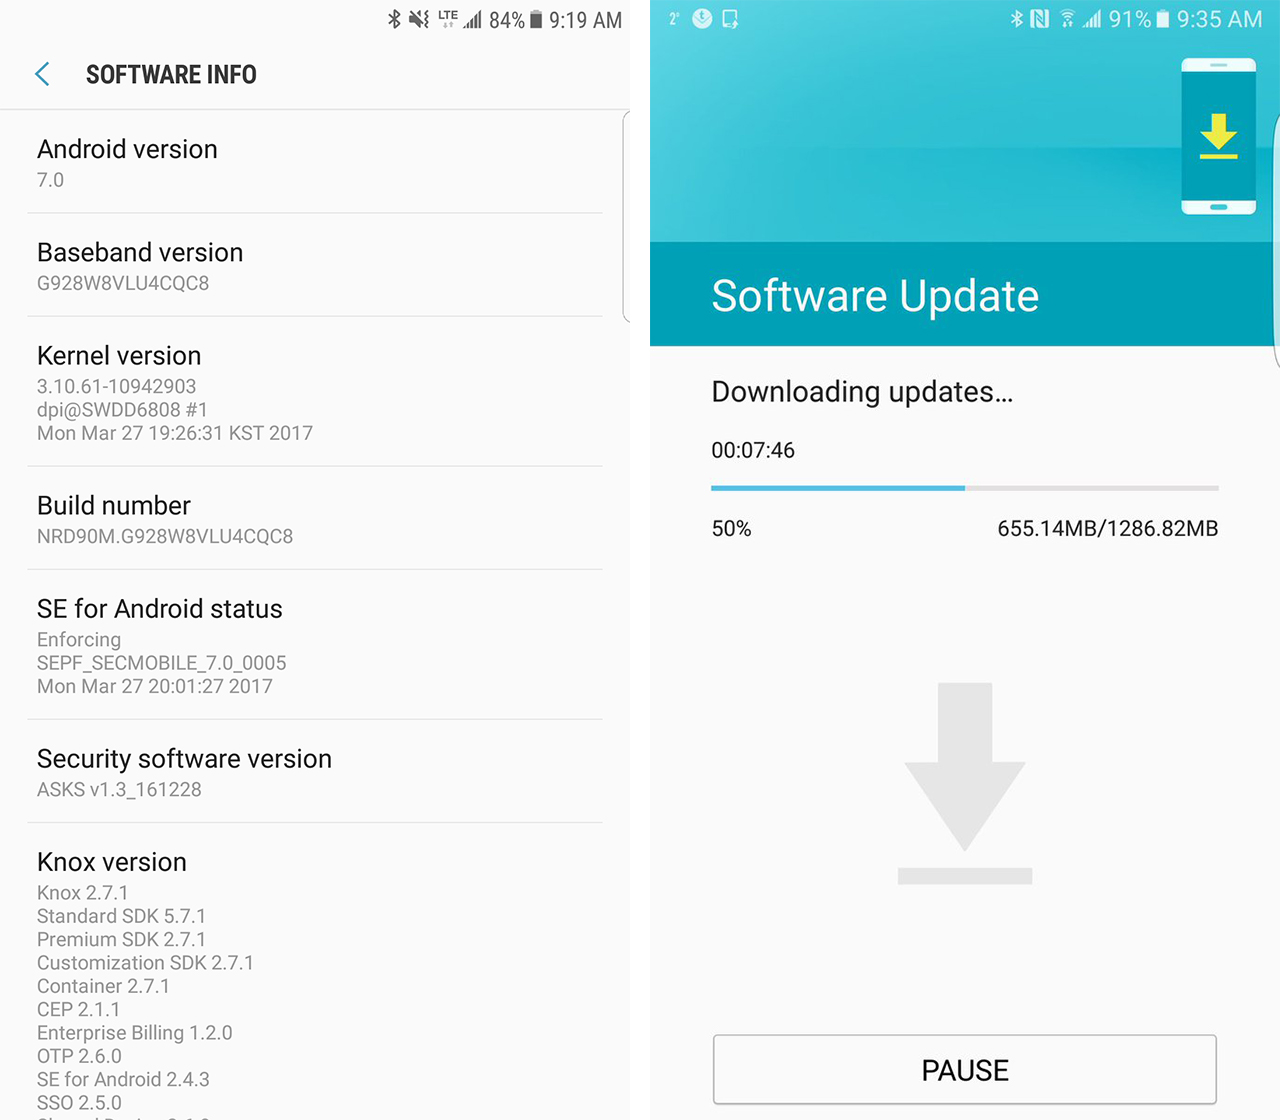 Galaxy S6 edge+ downloading Android Nougat